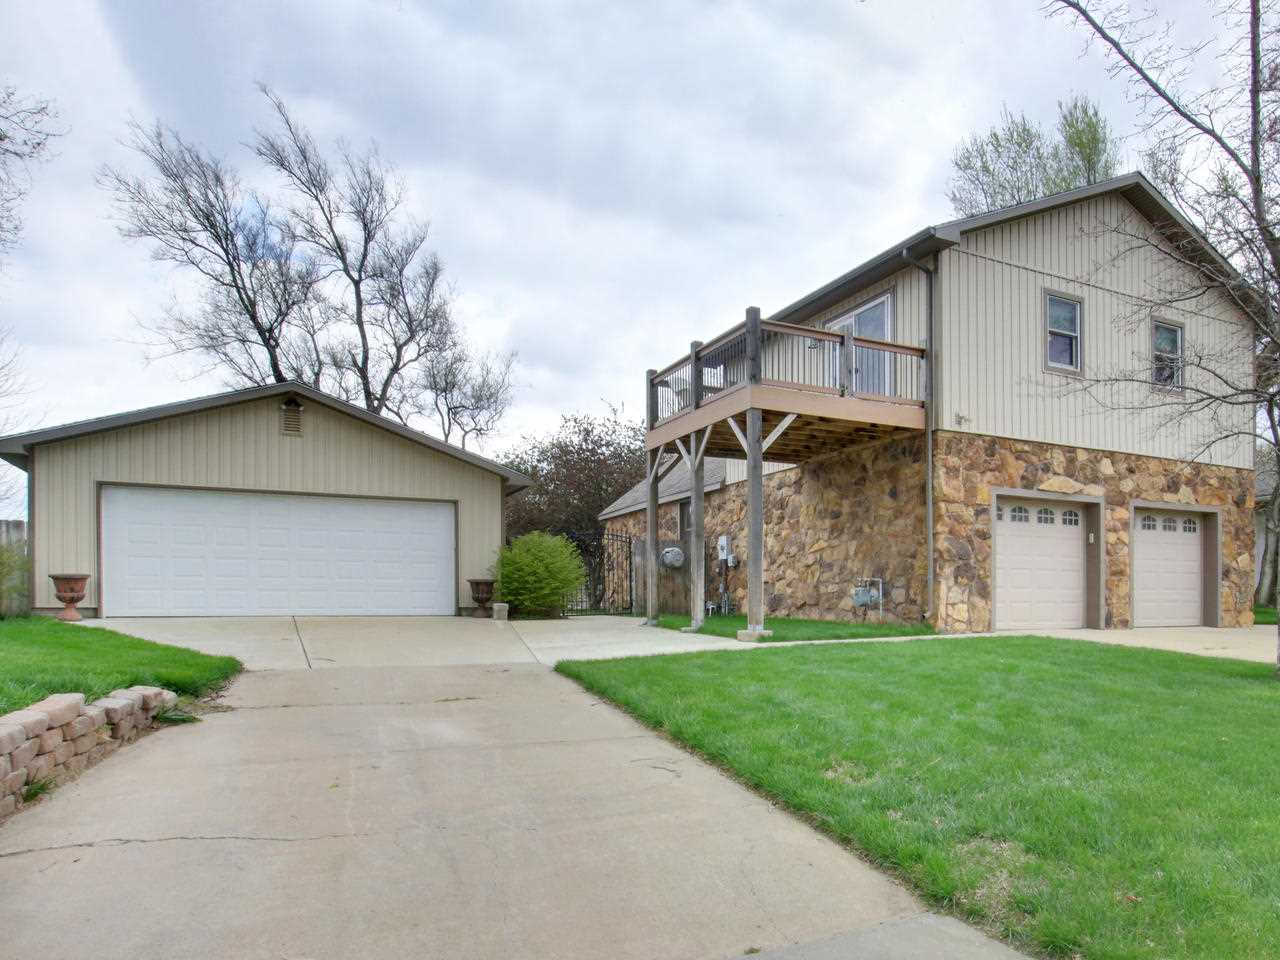 This property has a little bit of everything for a great price!  Must see quickly! Sitting on a near